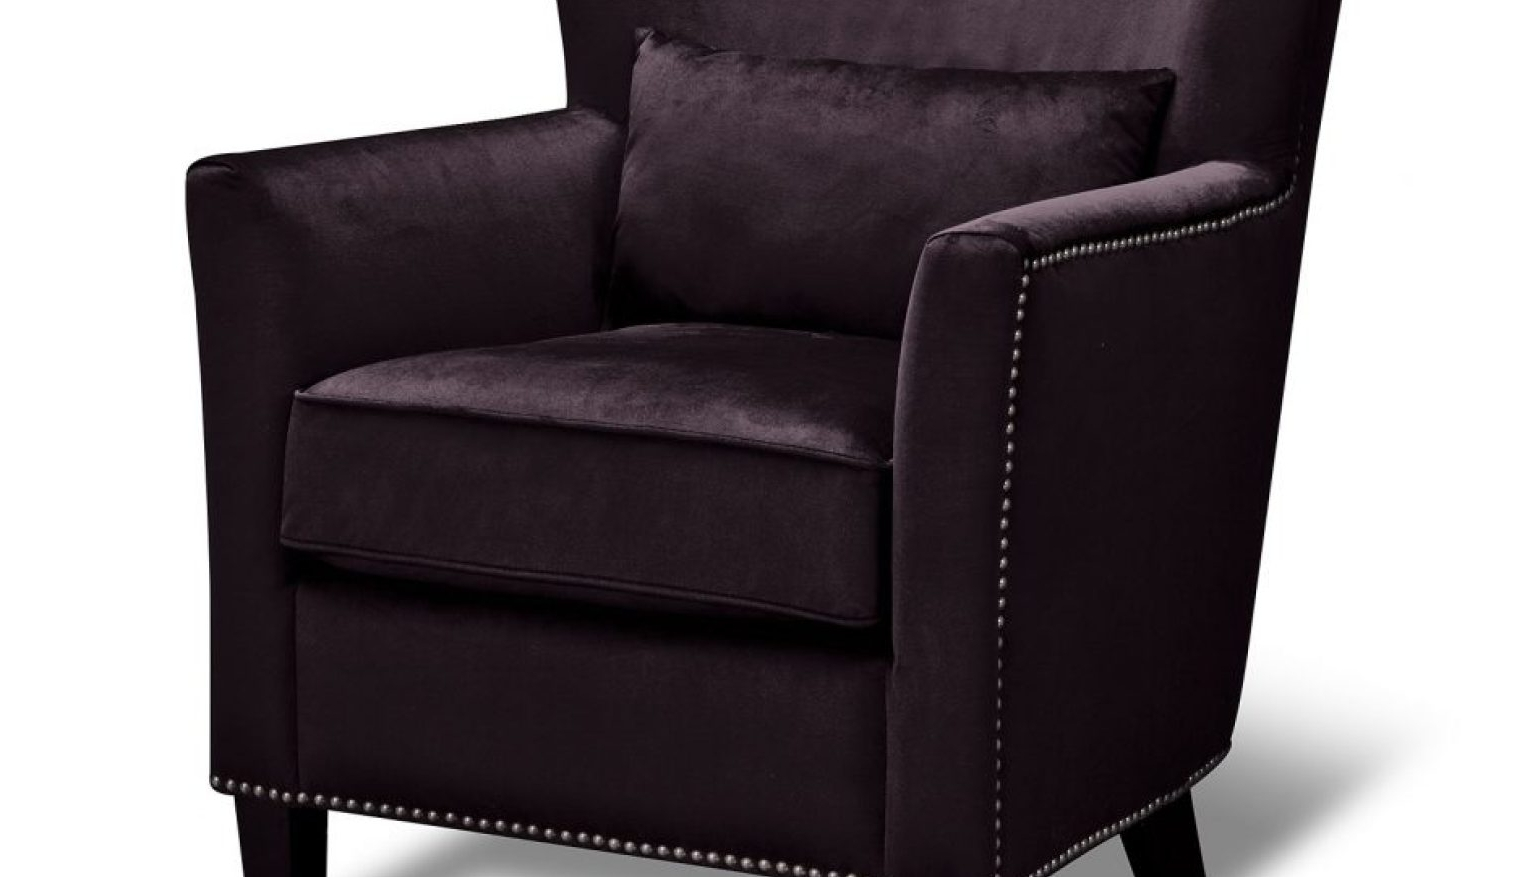 Chair : Shoe Chair Amazing Heel Chair Sofas Stiletto Shoe Chair Throughout Current Heel Chair Sofas (View 3 of 20)